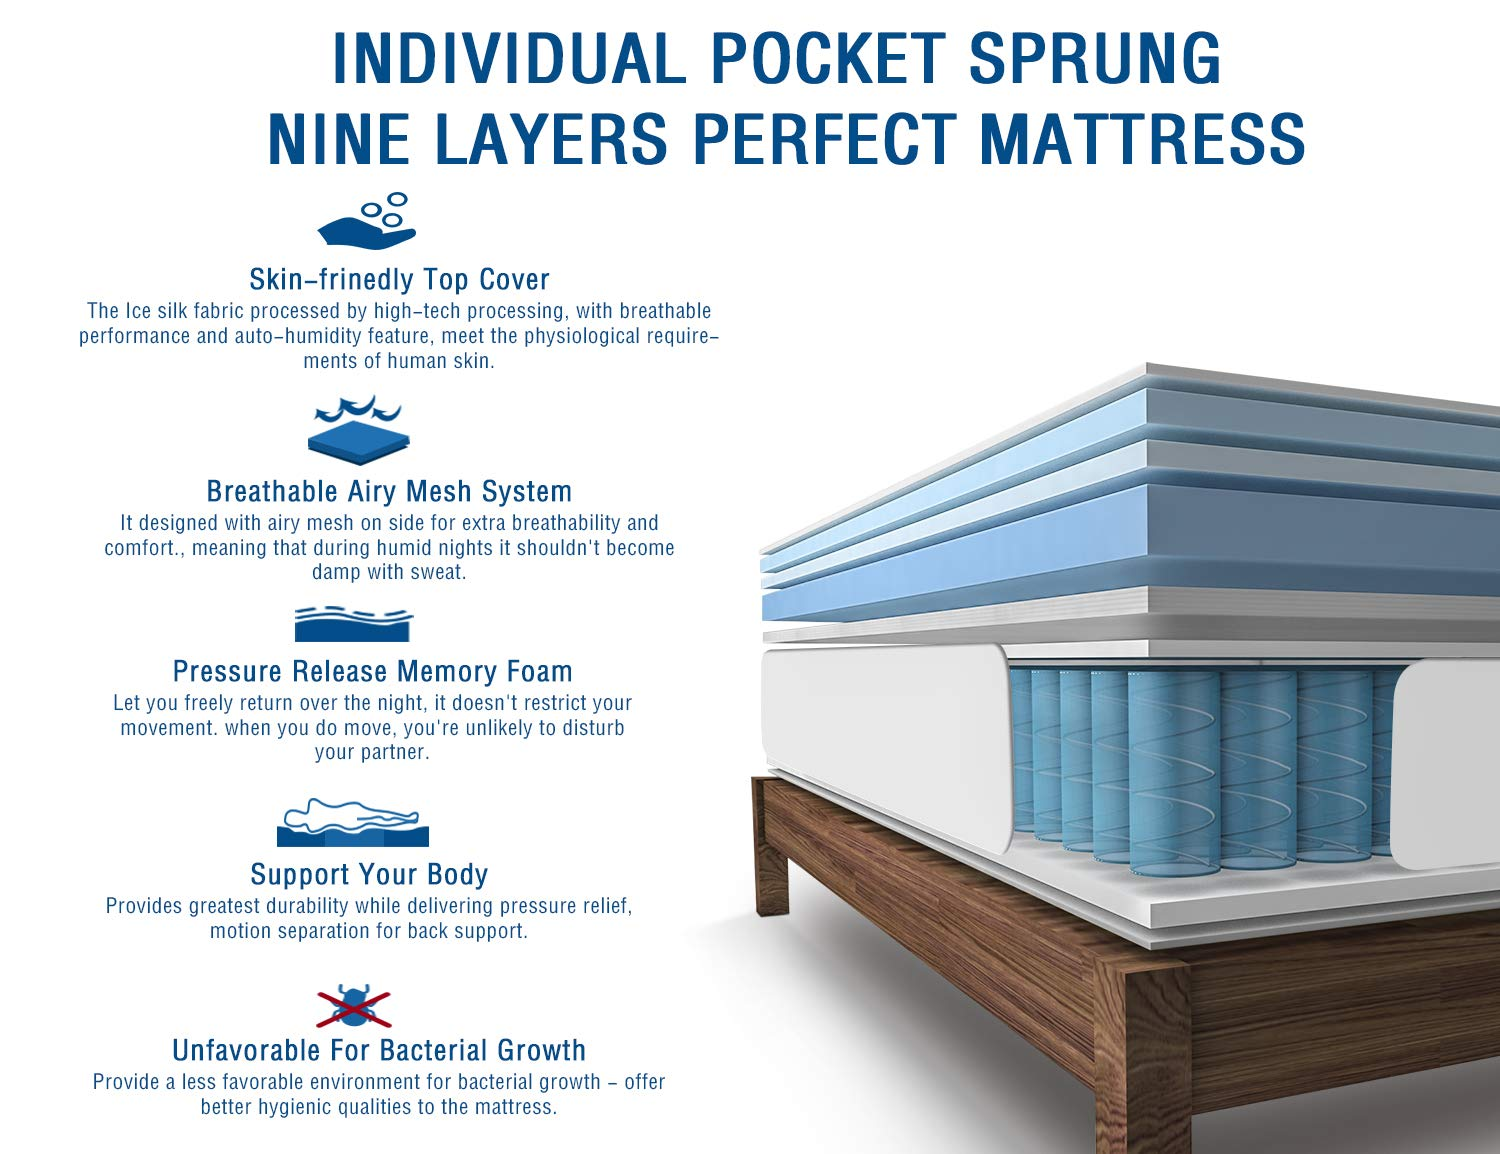 ANGEL QUEEN Small Single Mattress with the Gel Memory Foam Covered with Ice Silk Fabric and Supported by Indepentdent Pocket Springs 9-Zone Orthopaedic 4D Breathable Mattress